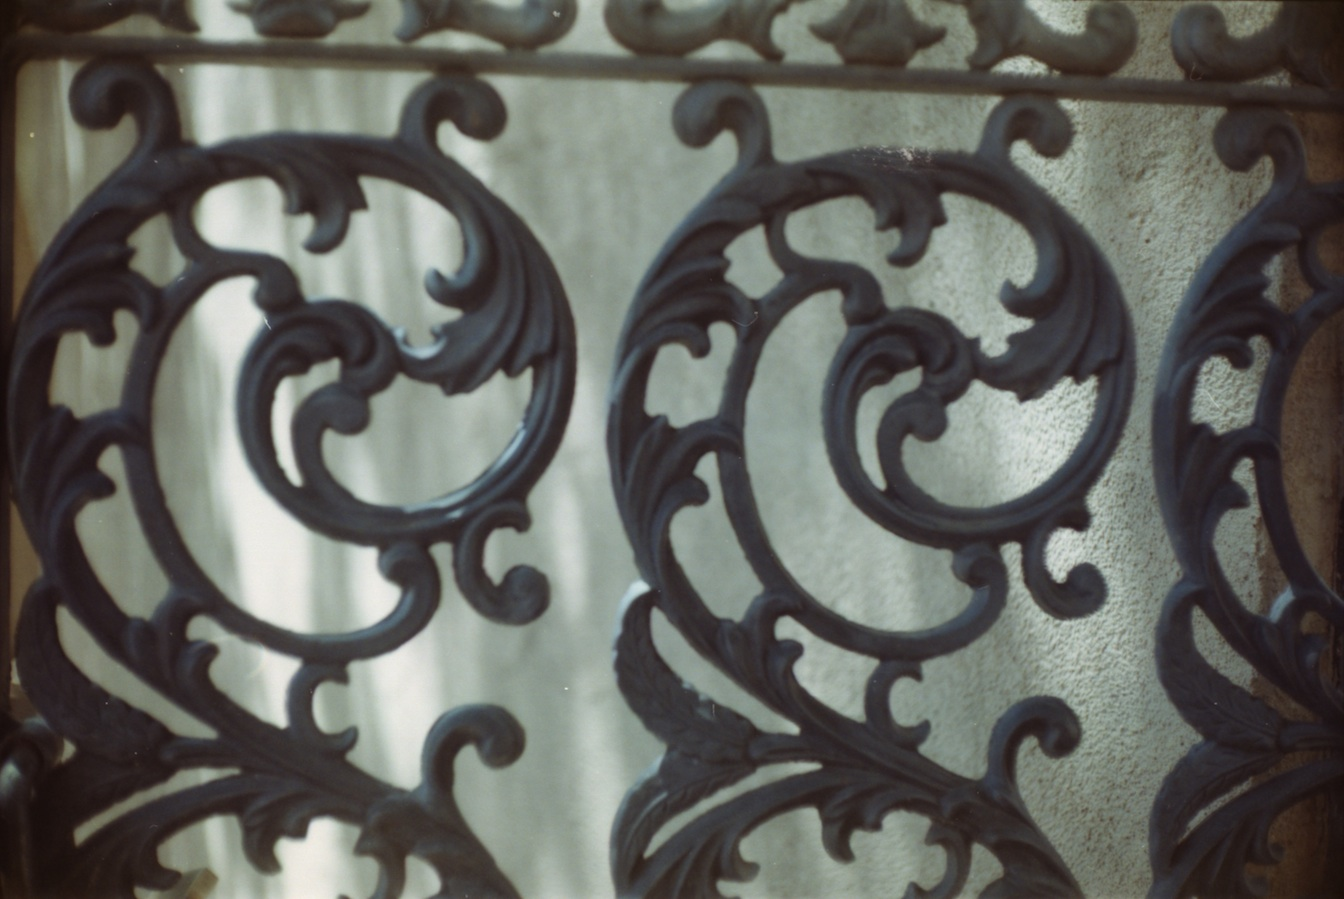 Iron gate detail.  I missed the focus point a little at f/1.8 and got the stucco sharp.